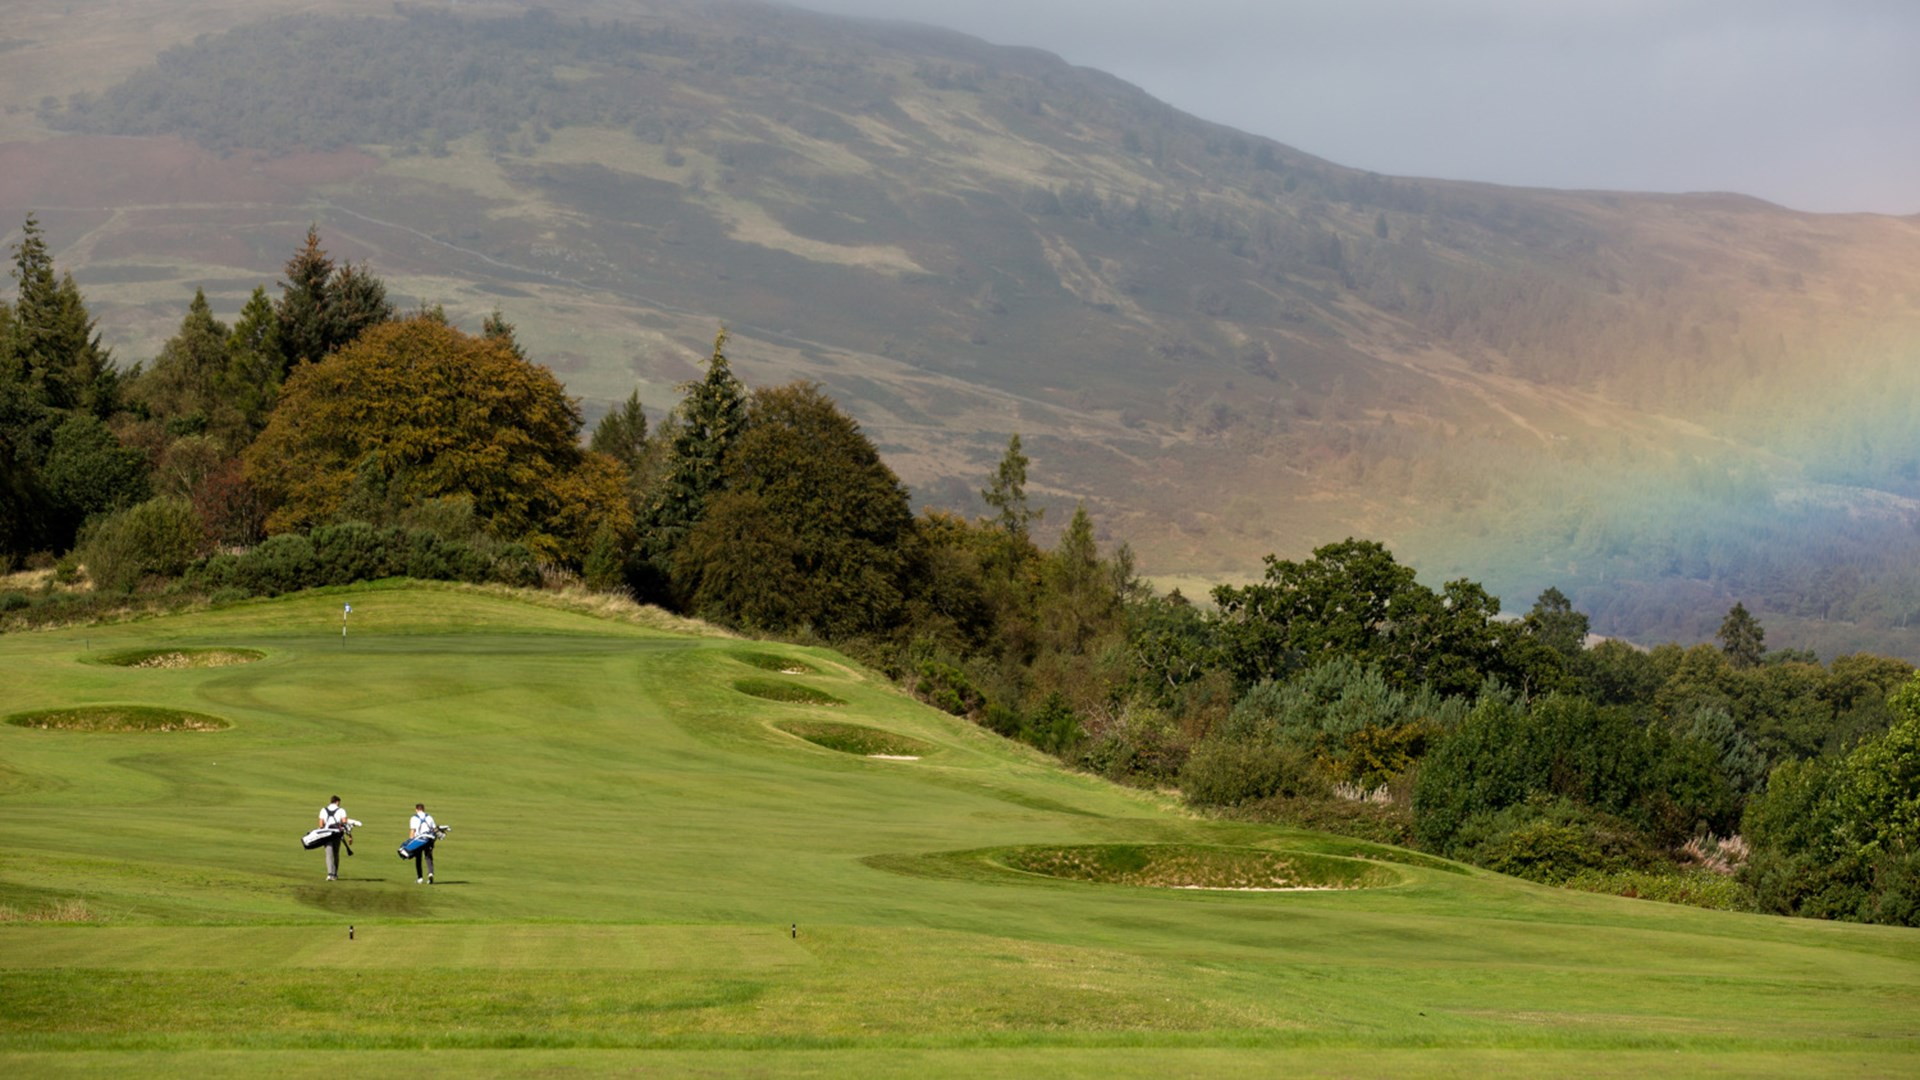 Wide view of gold course as two golfers walk across with mountains and the Trossachs forest in the distance.